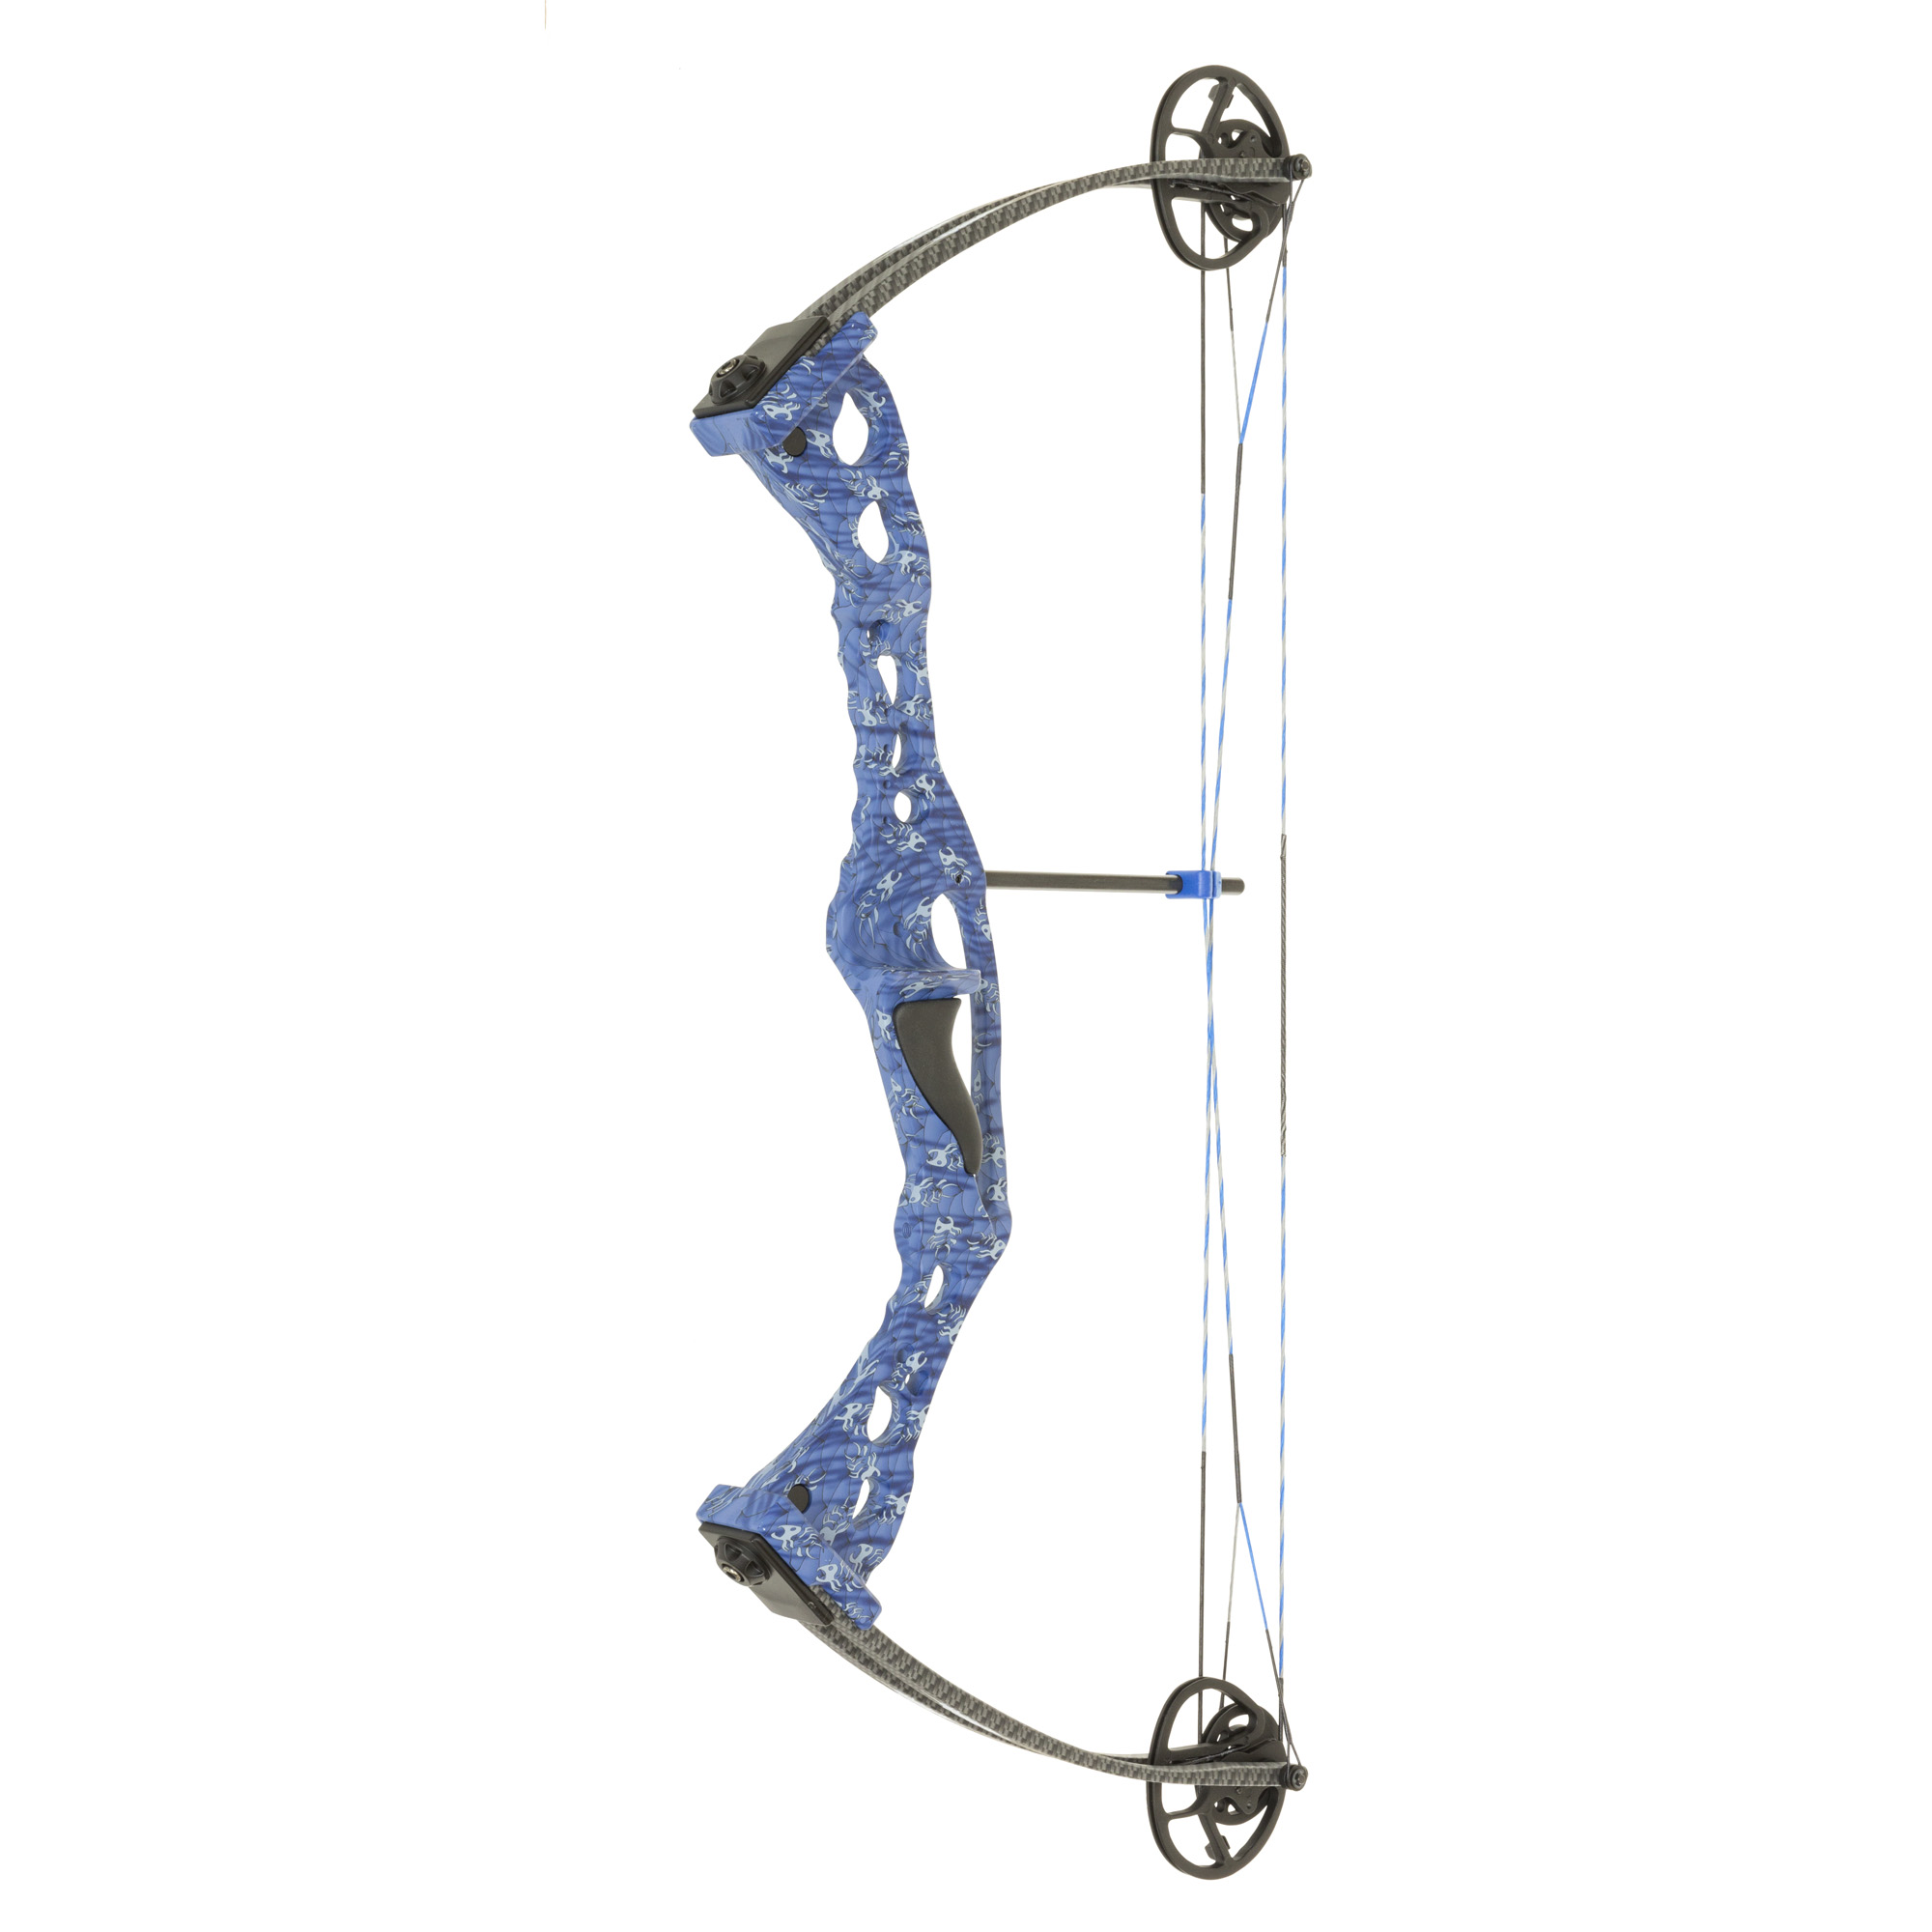 Poseidon Compound Bow